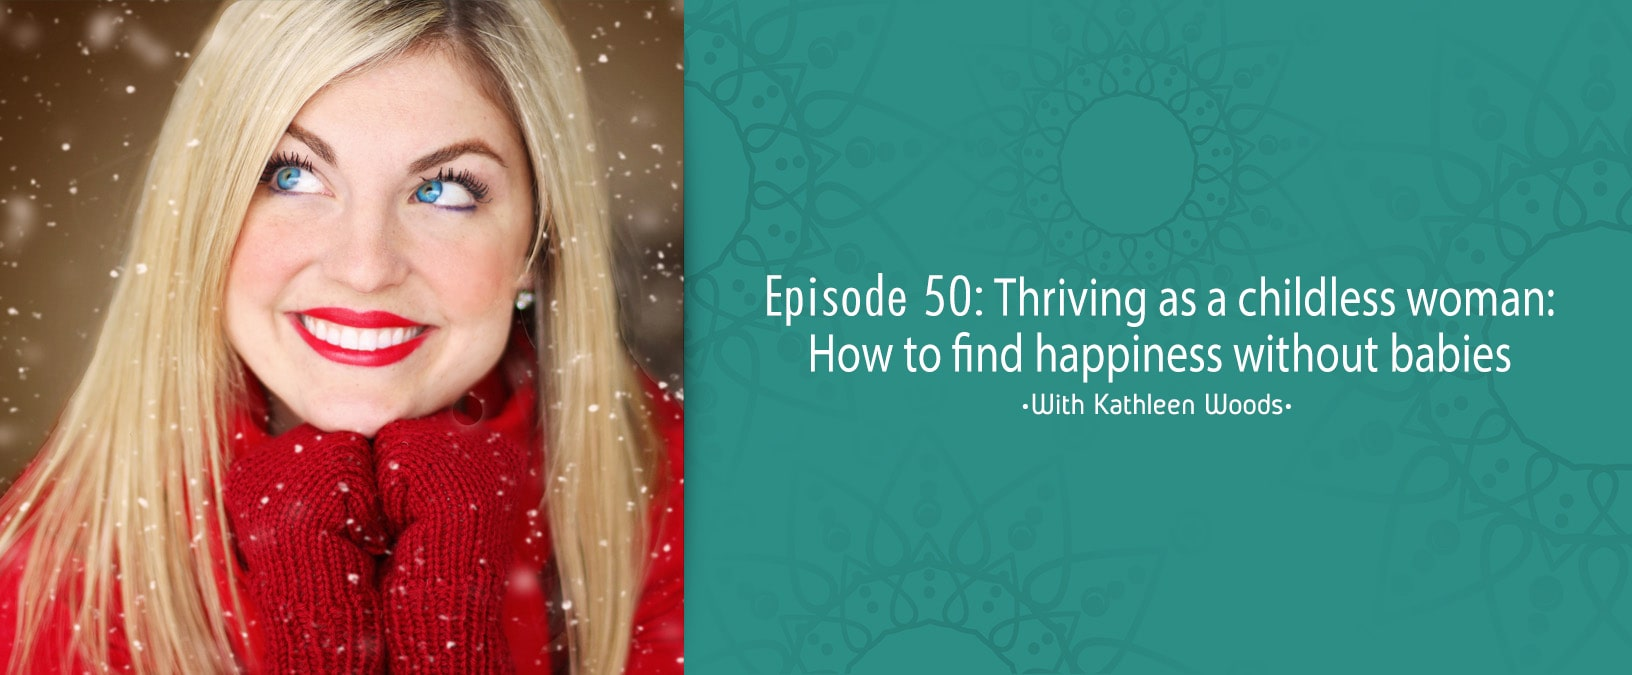 Thriving as a childless woman: How to find happiness without babies